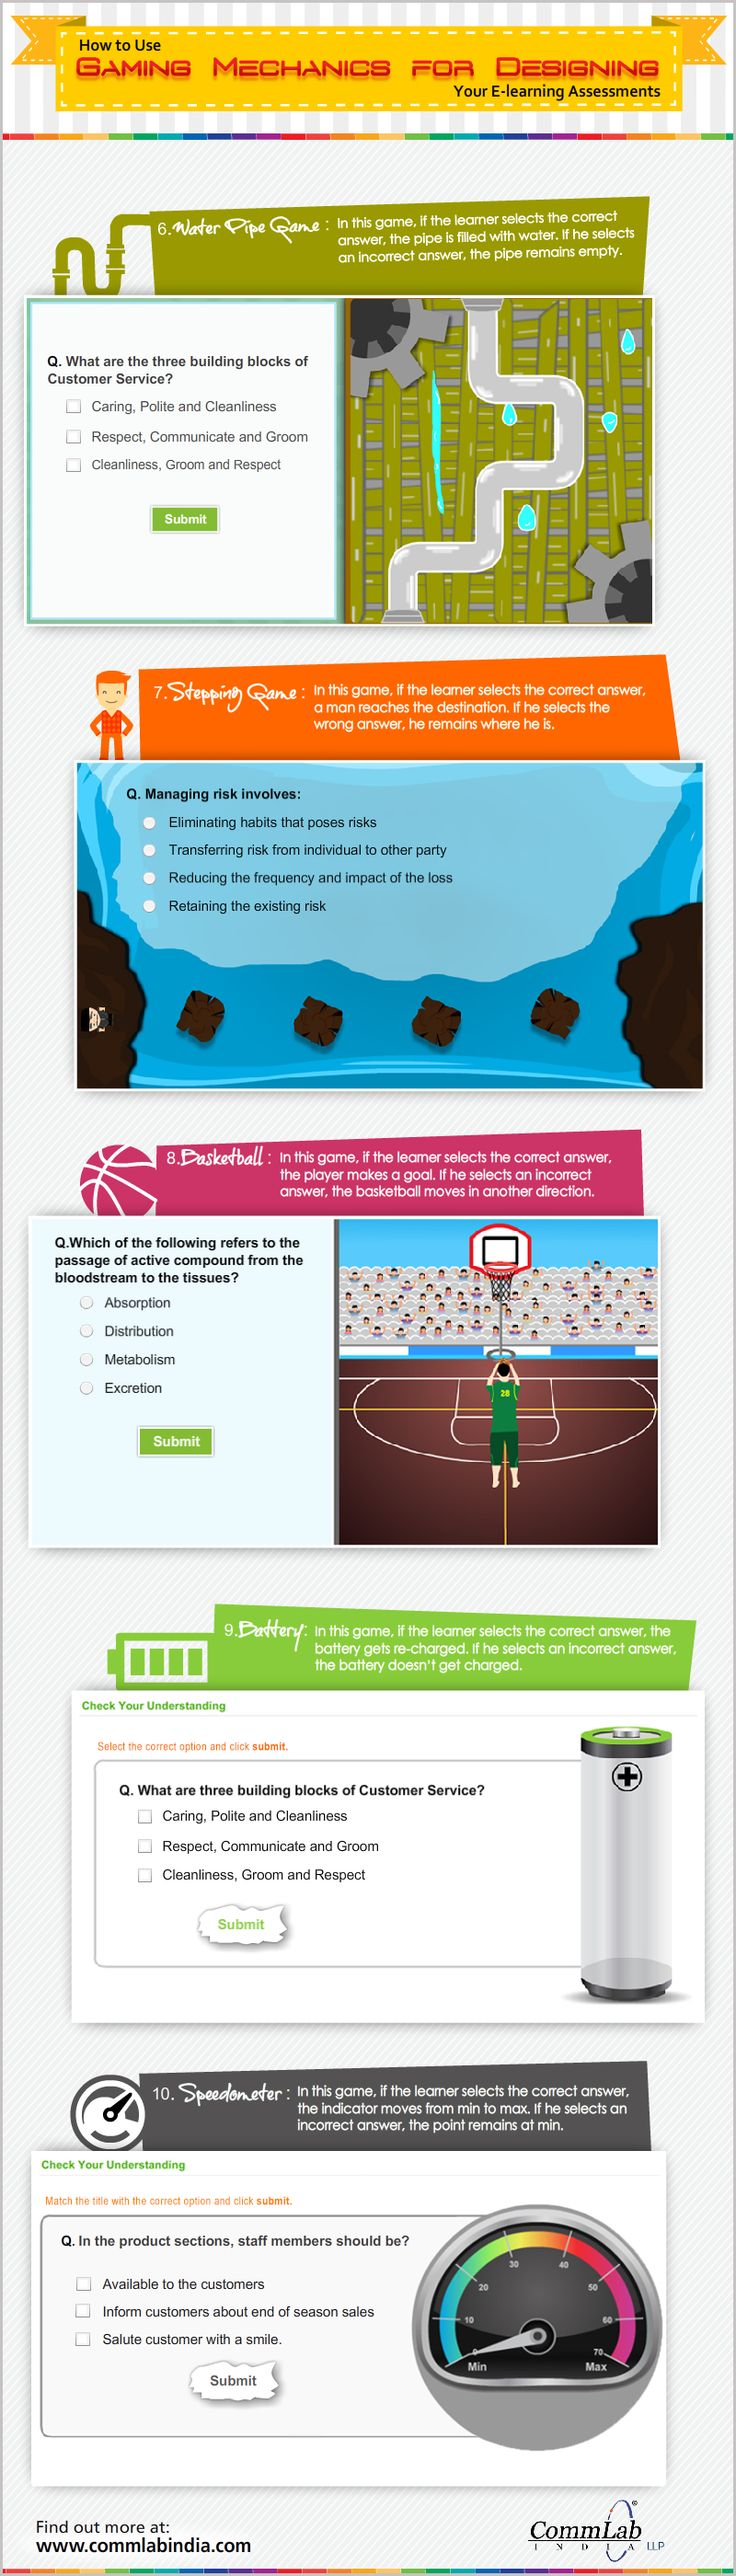 E learning poster designs - How To Use Gaming Mechanics For Designing Your E Learning Assessment An Infographic